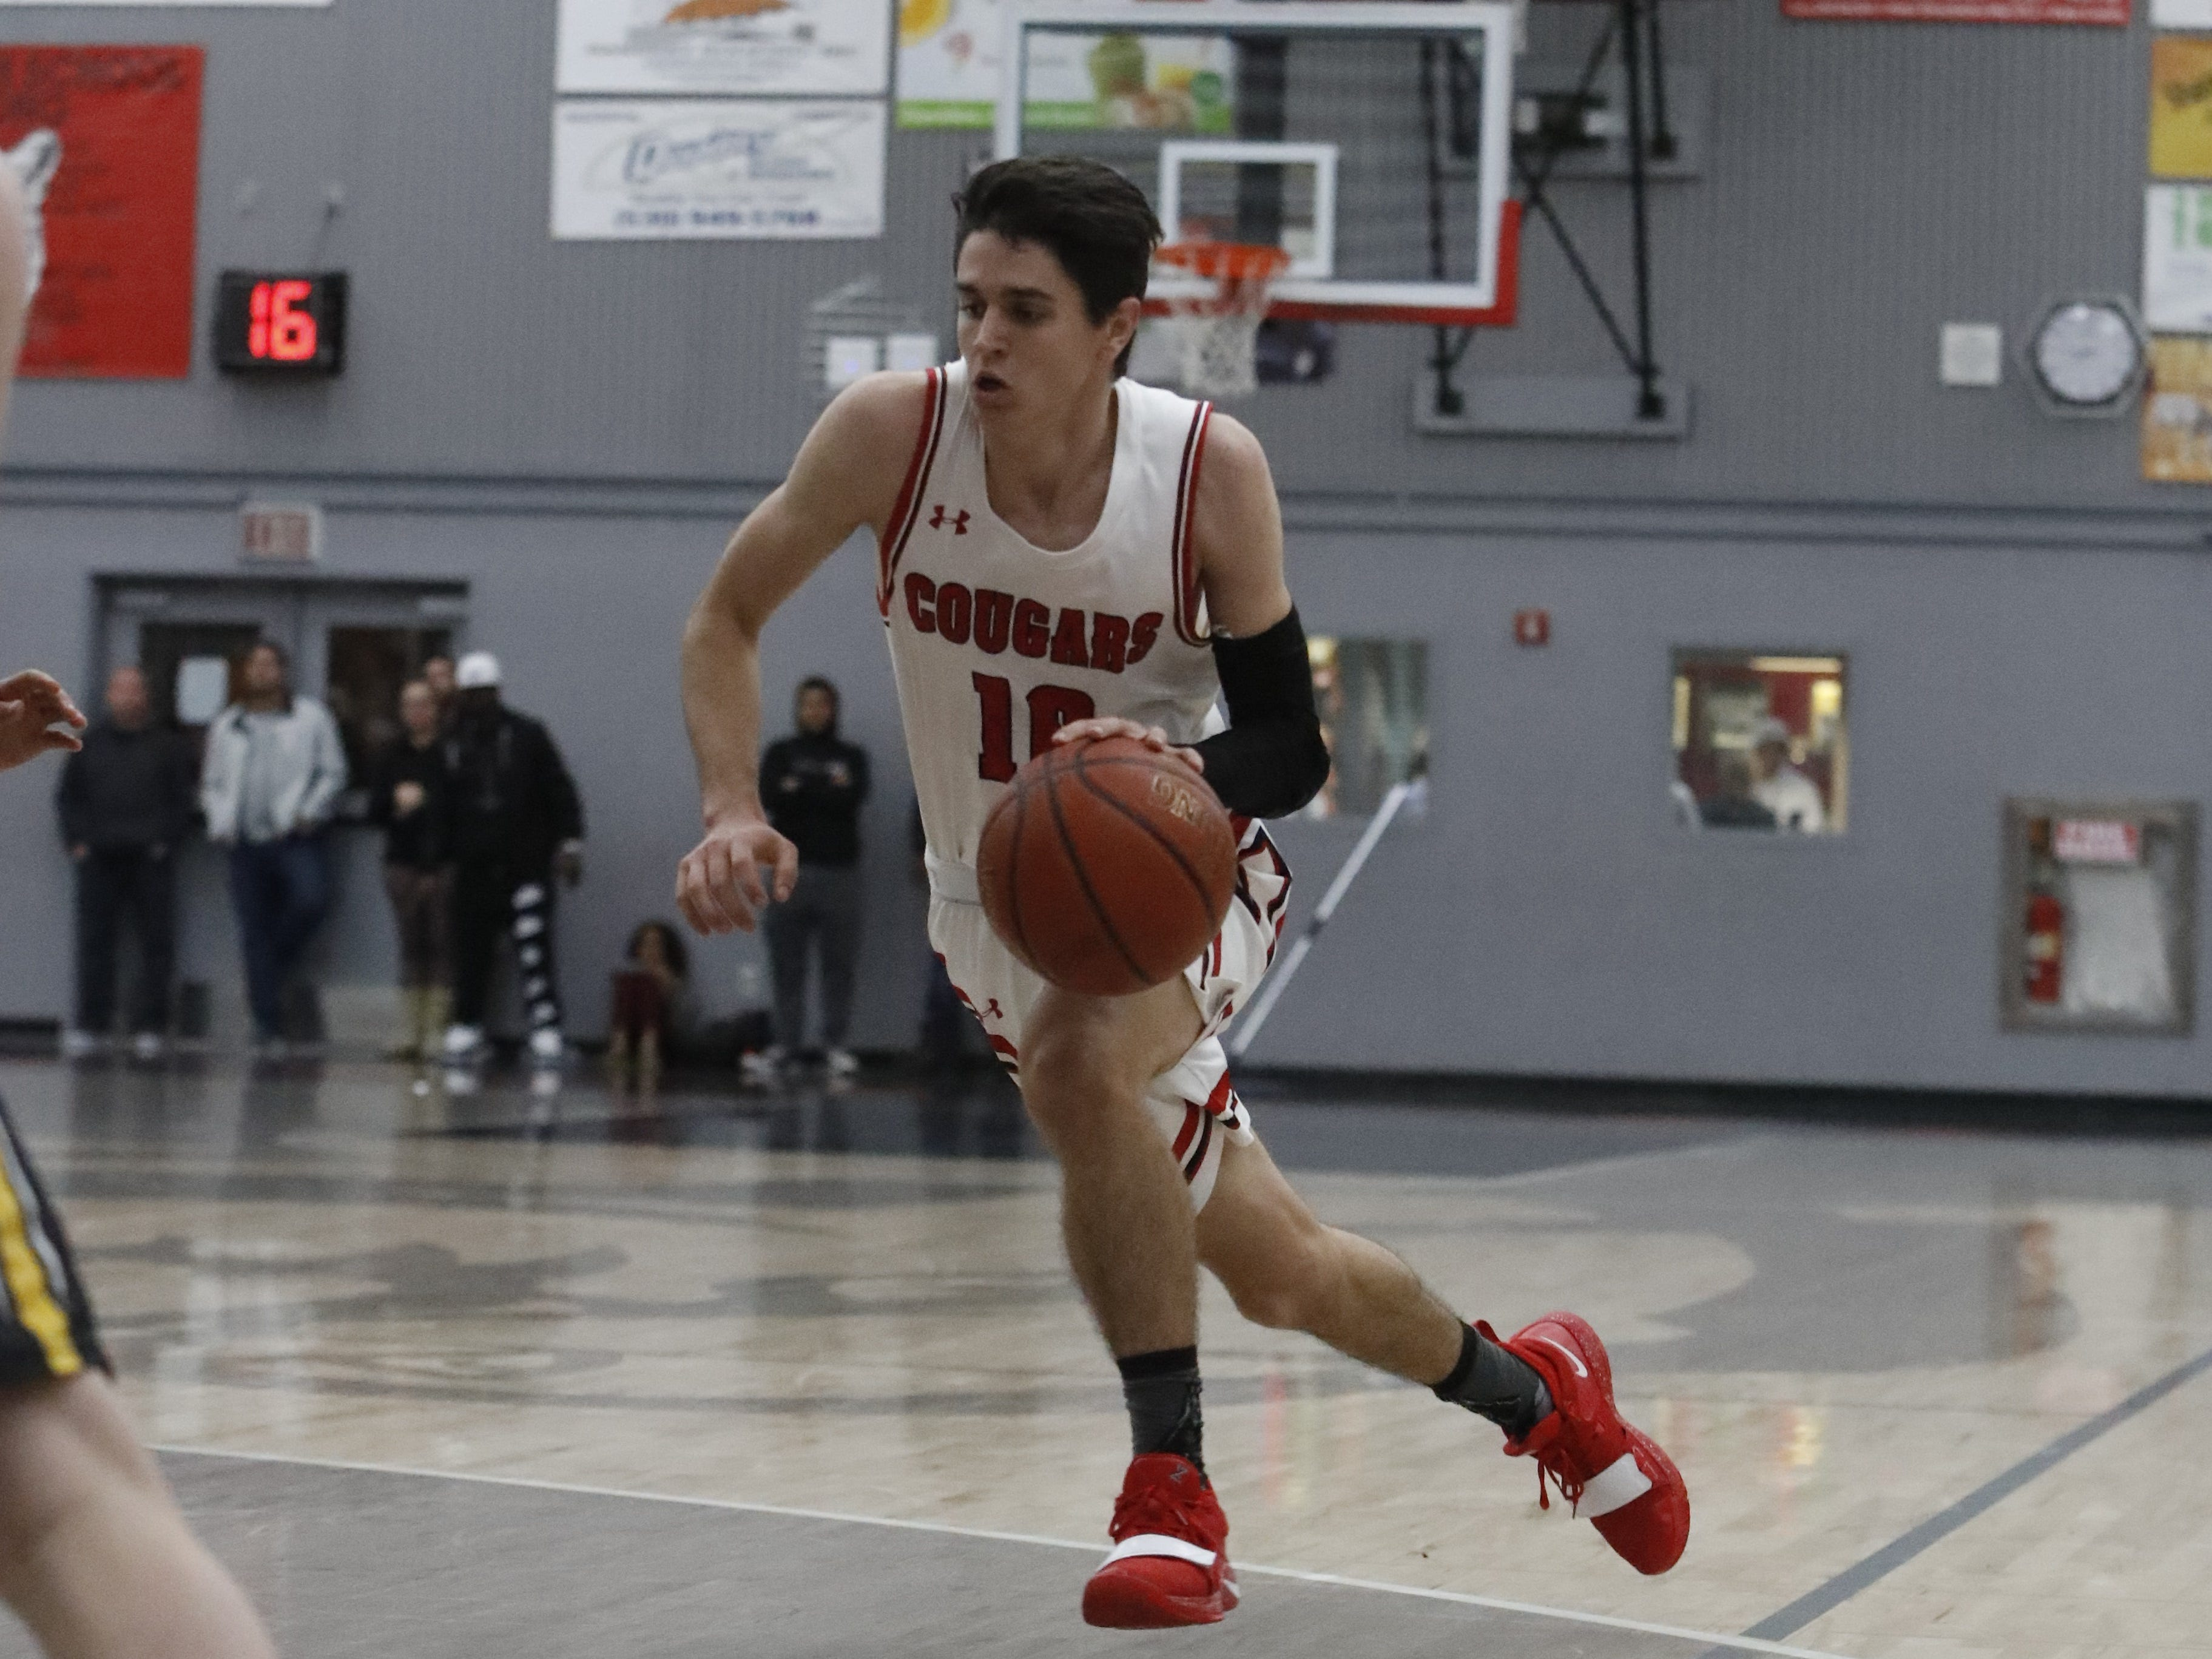 Foothill guard Josiah Palumbo drives to the rim during the Cougars' 55-50 win over the Hornets in the Division III Northern Section semifinals on Wednesday, Feb. 20.